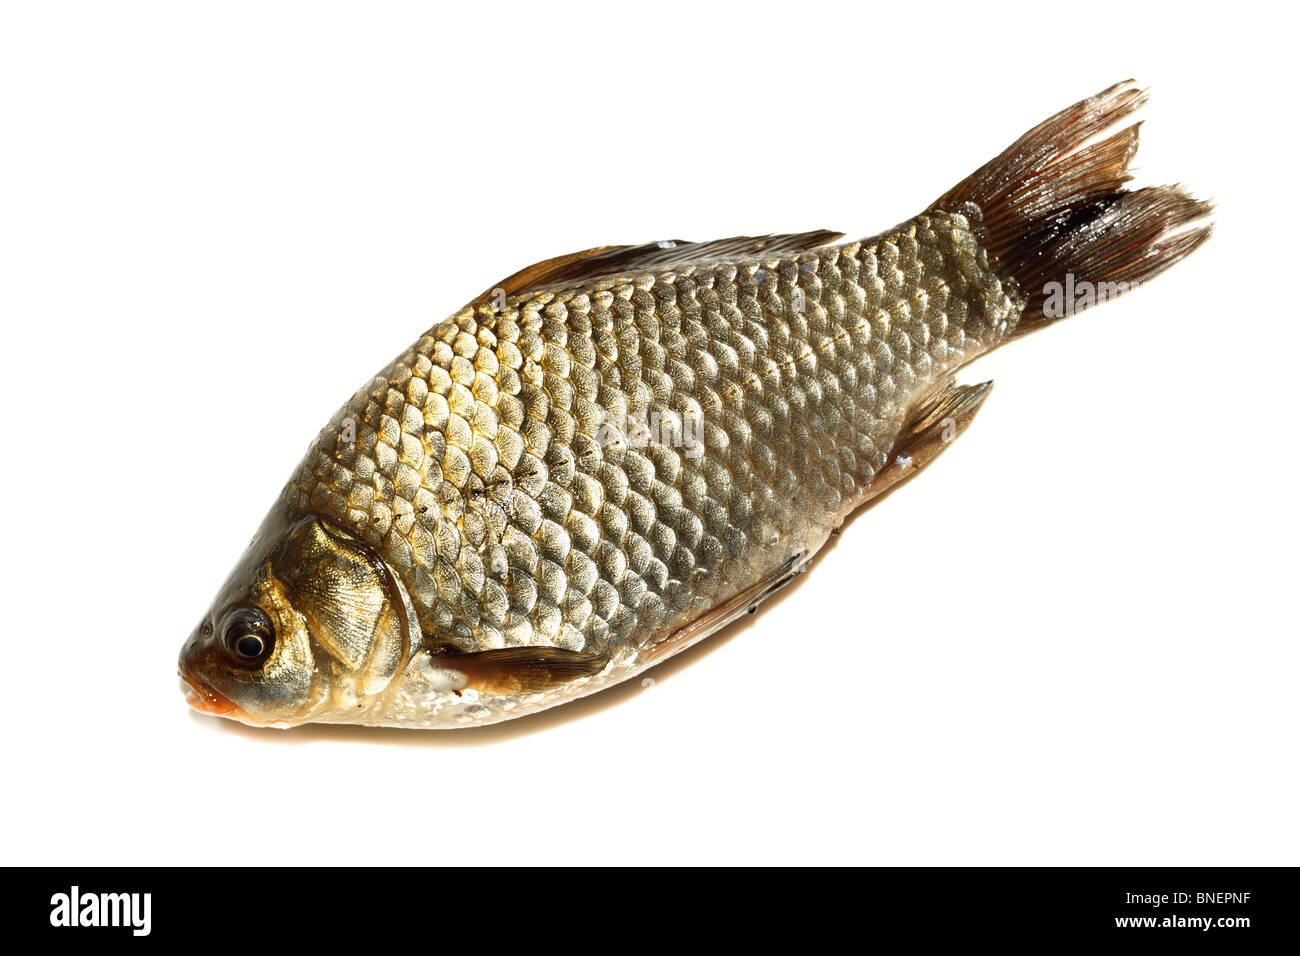 Freshwater fish in front of white background. Stock Photo